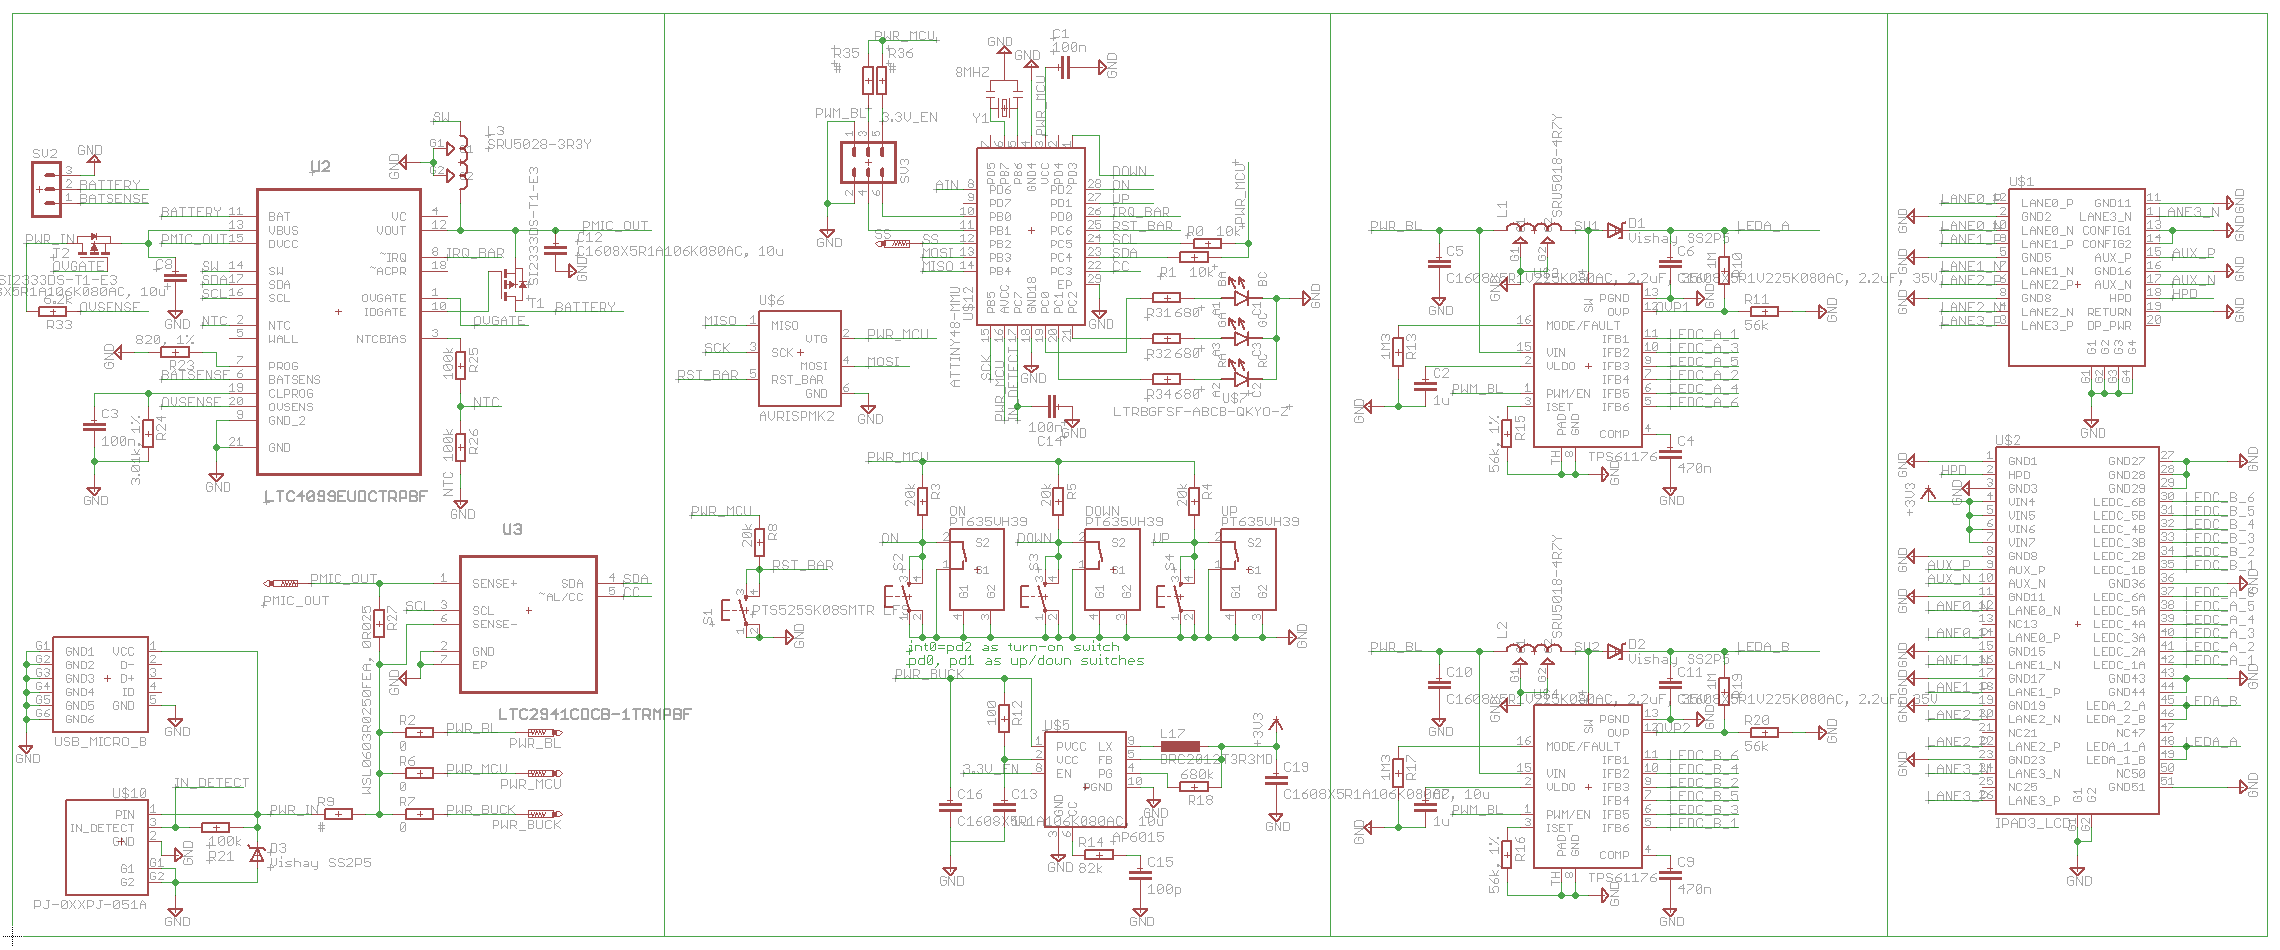 Retina iPad interface board, attempt #2 - schematic.